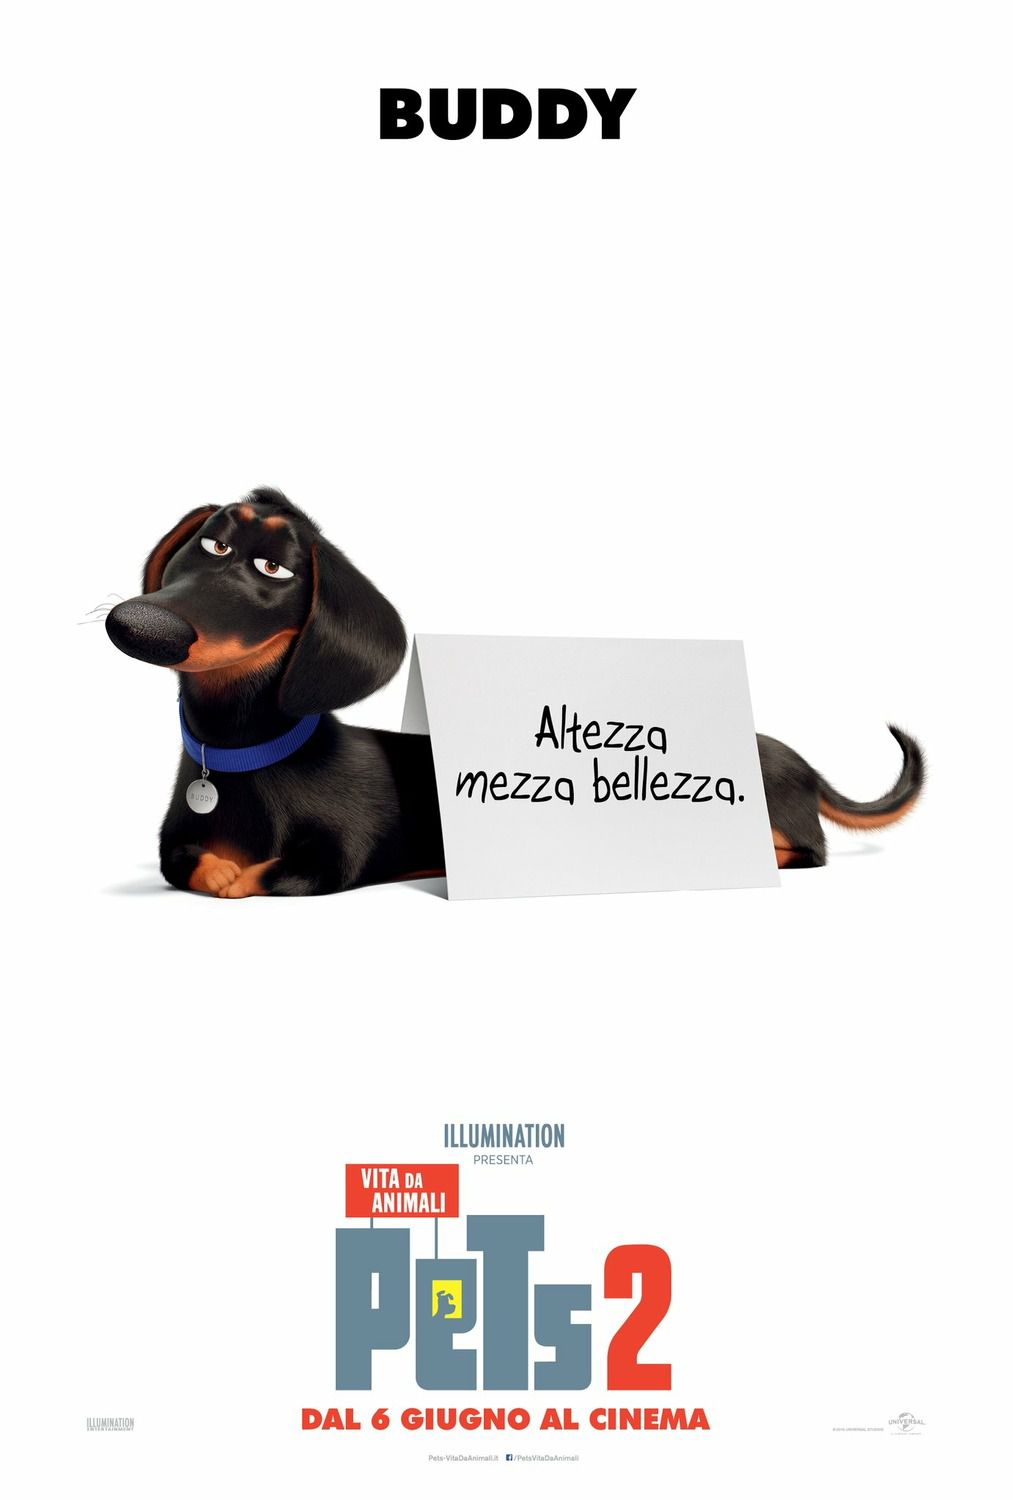 Secret Life of Pets 2 Buddy - Altezza mezza Bellezza - poster